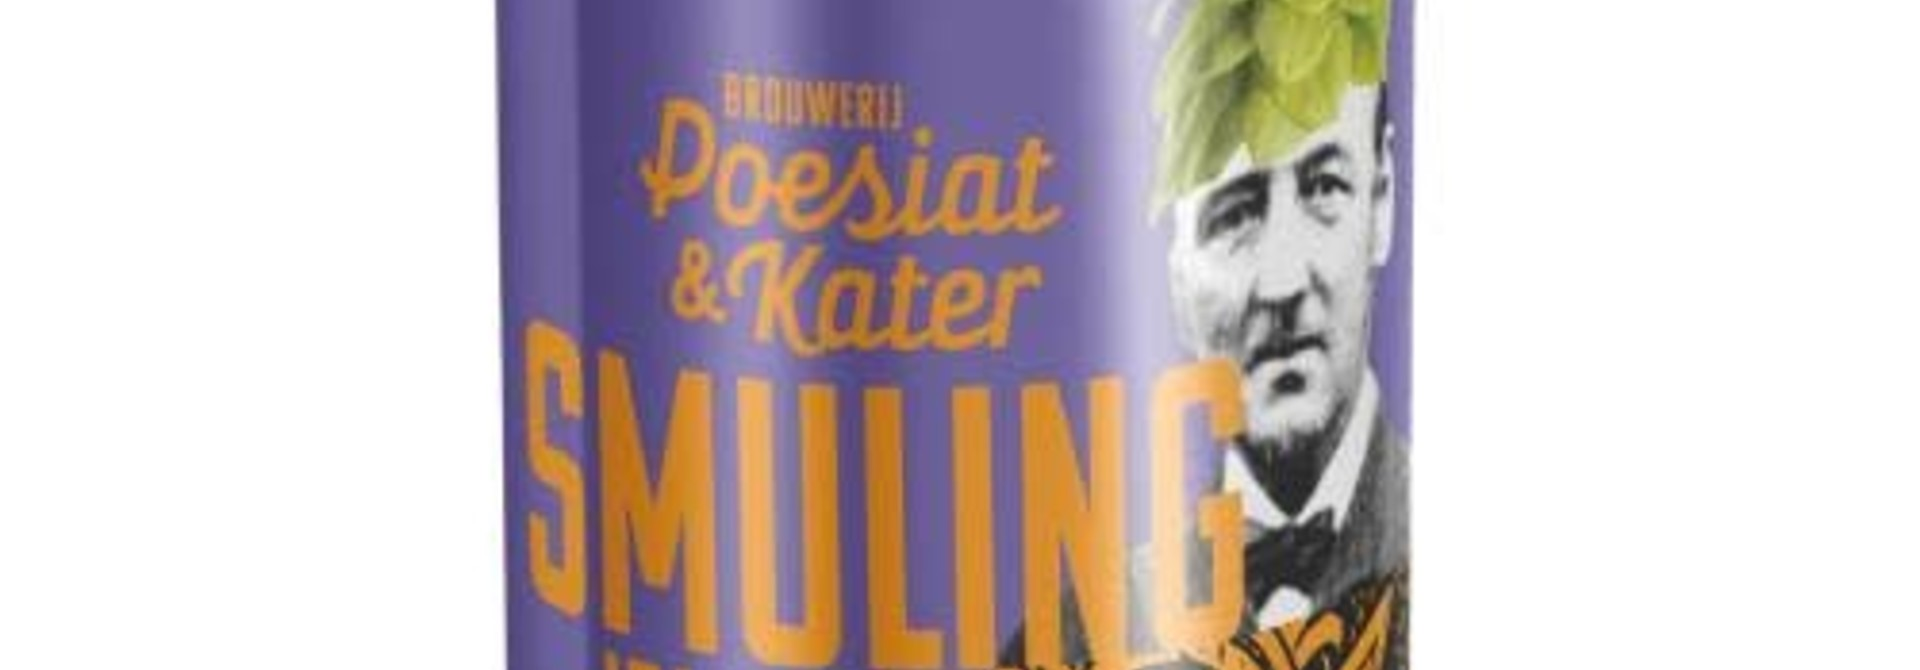 POESIAT KATER - SMULLING IPA  33CL